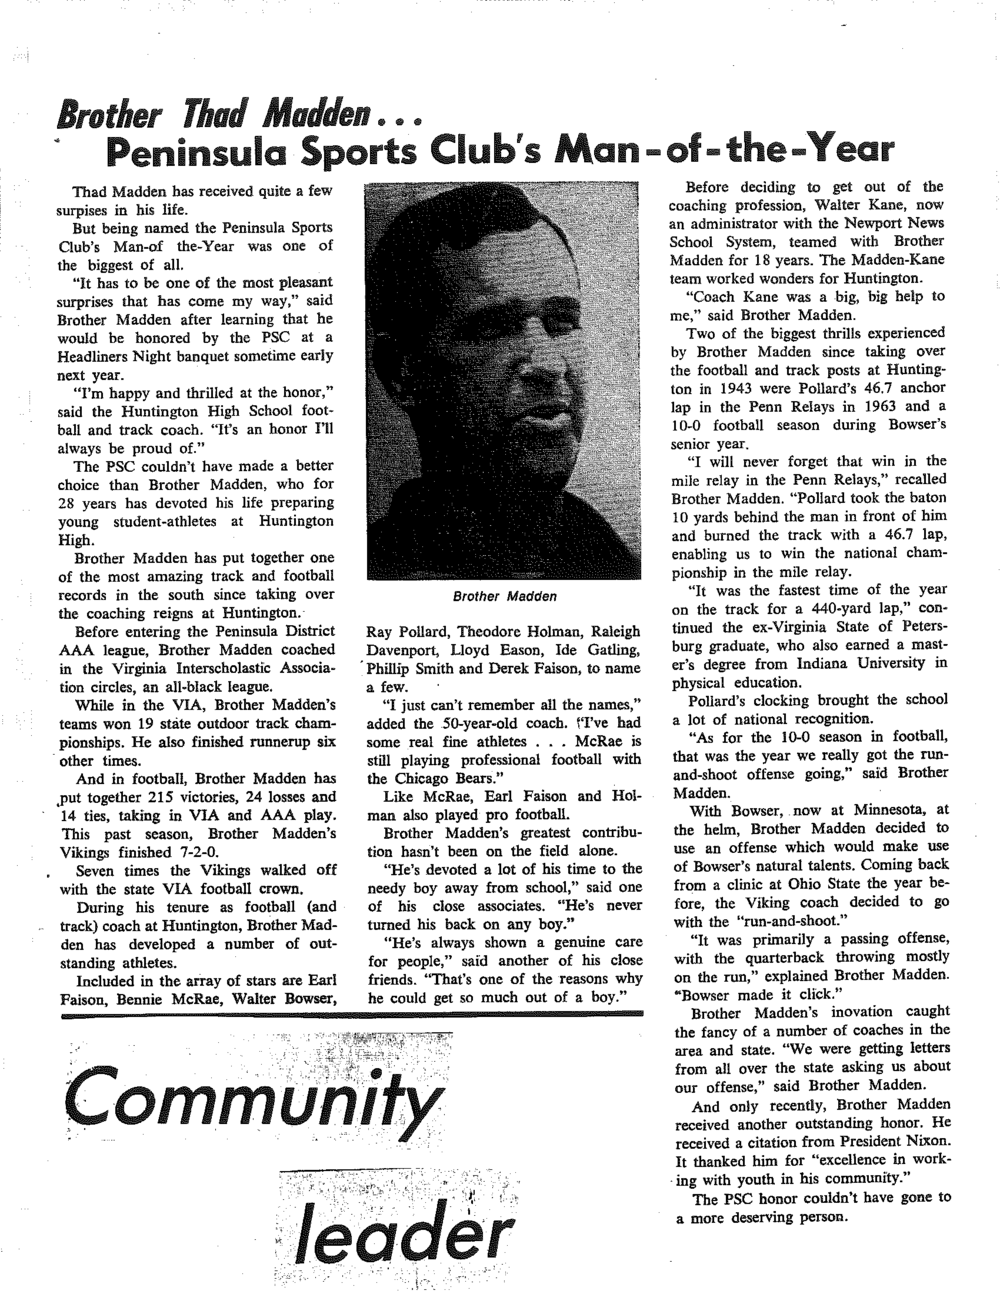 Zeta Lambda 1971 - Peninsula Sports Club Man of the Year, Bro. Thad Madden.png